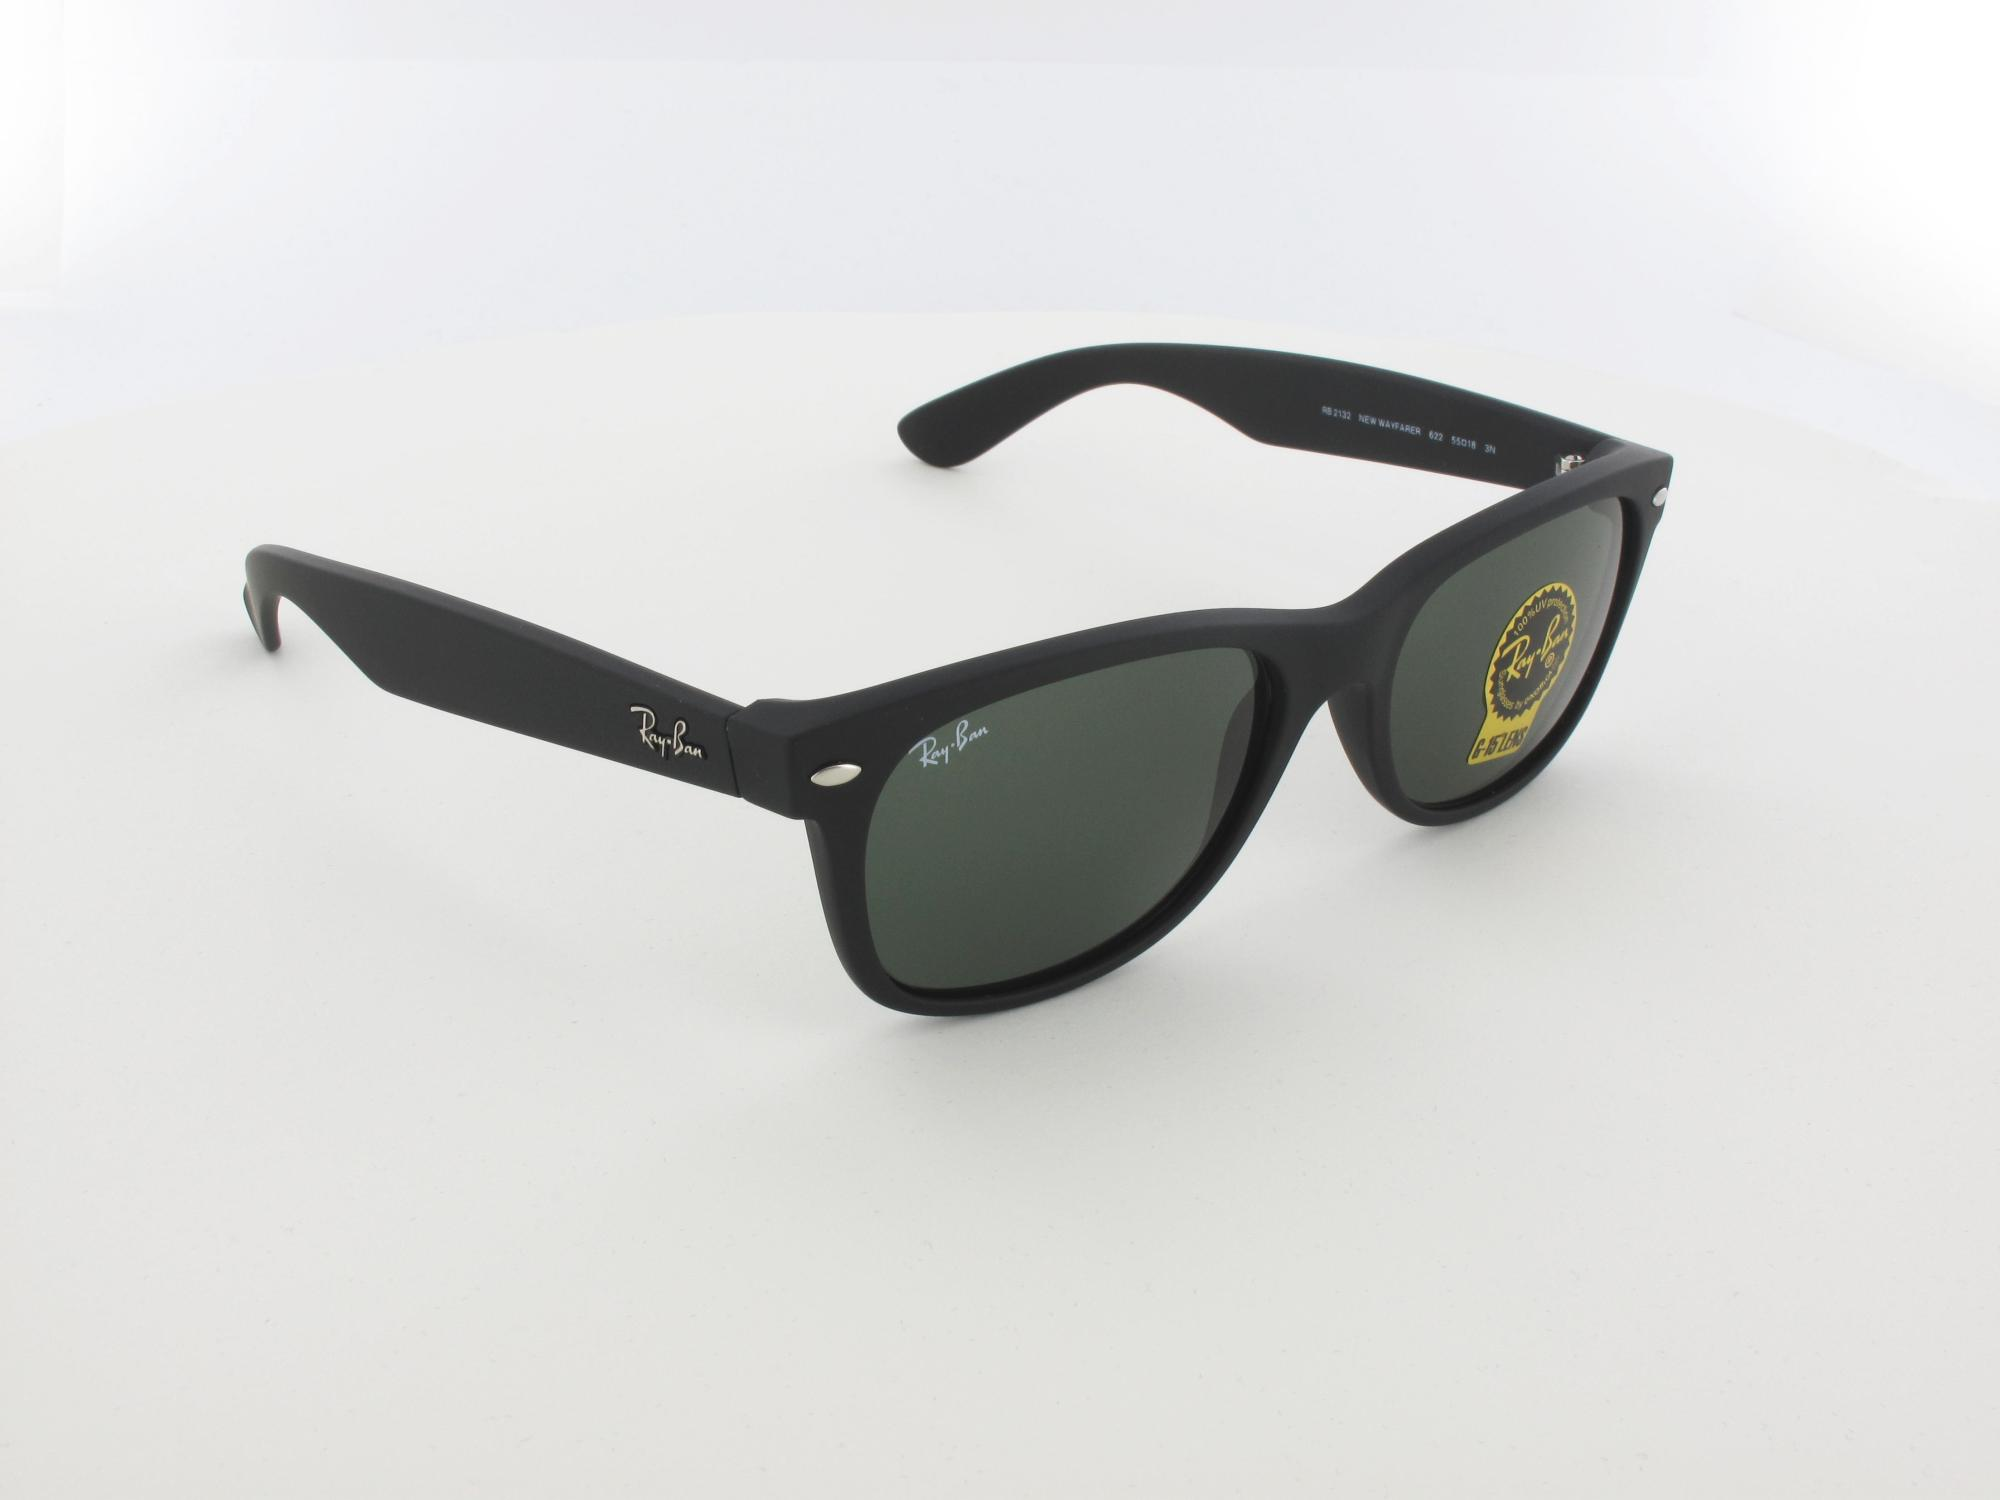 Ray Ban | New Wayfarer RB2132 622 55 | black rubber / green